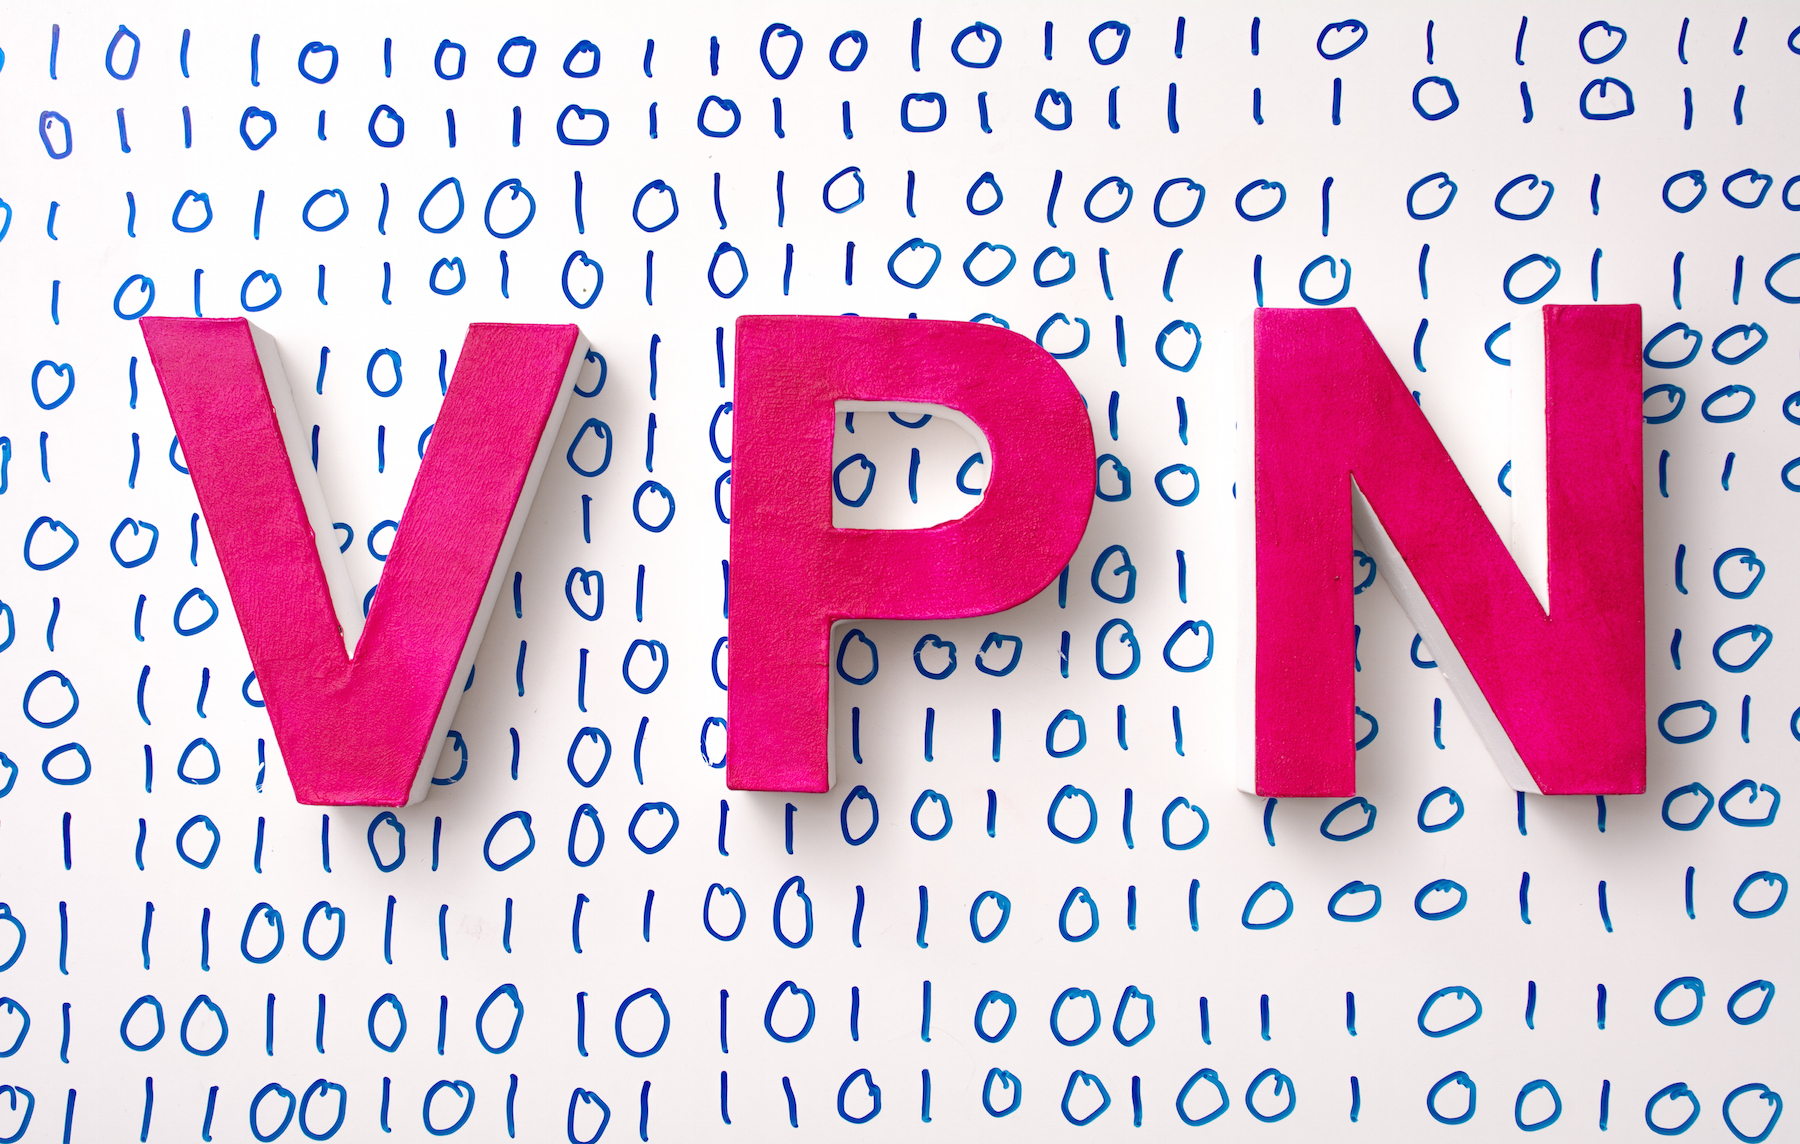 opera browser vpn what is a vpn what does vpn mean?